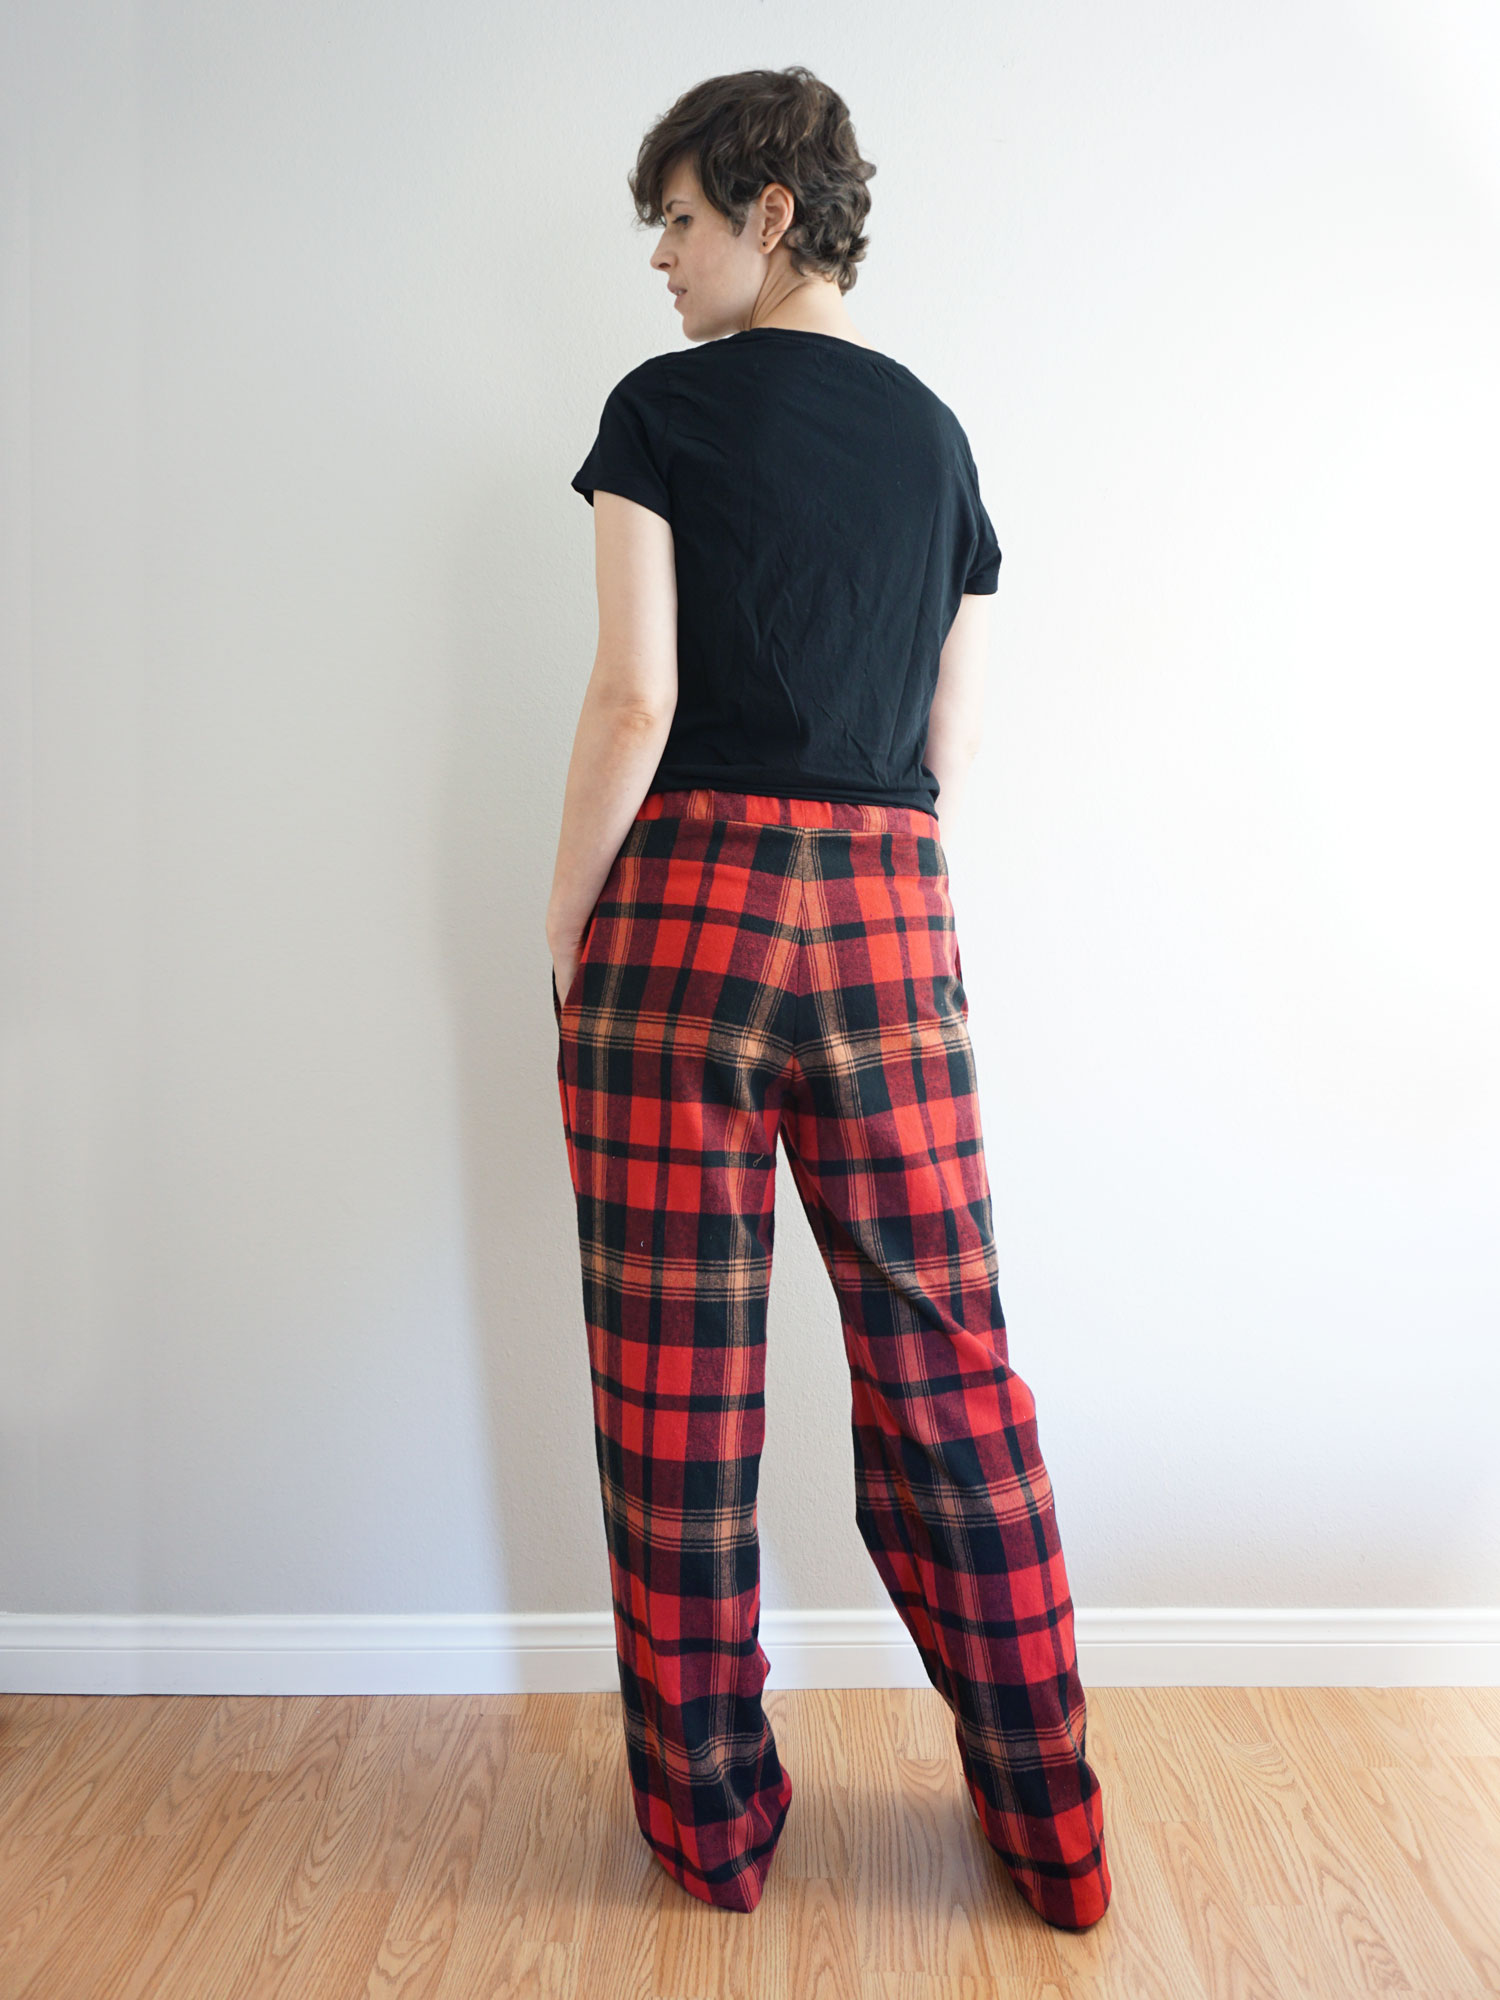 DIY Pajama Bottoms – Review of the Sew Over It Ultimate Pyjamas pattern | Sew DIY